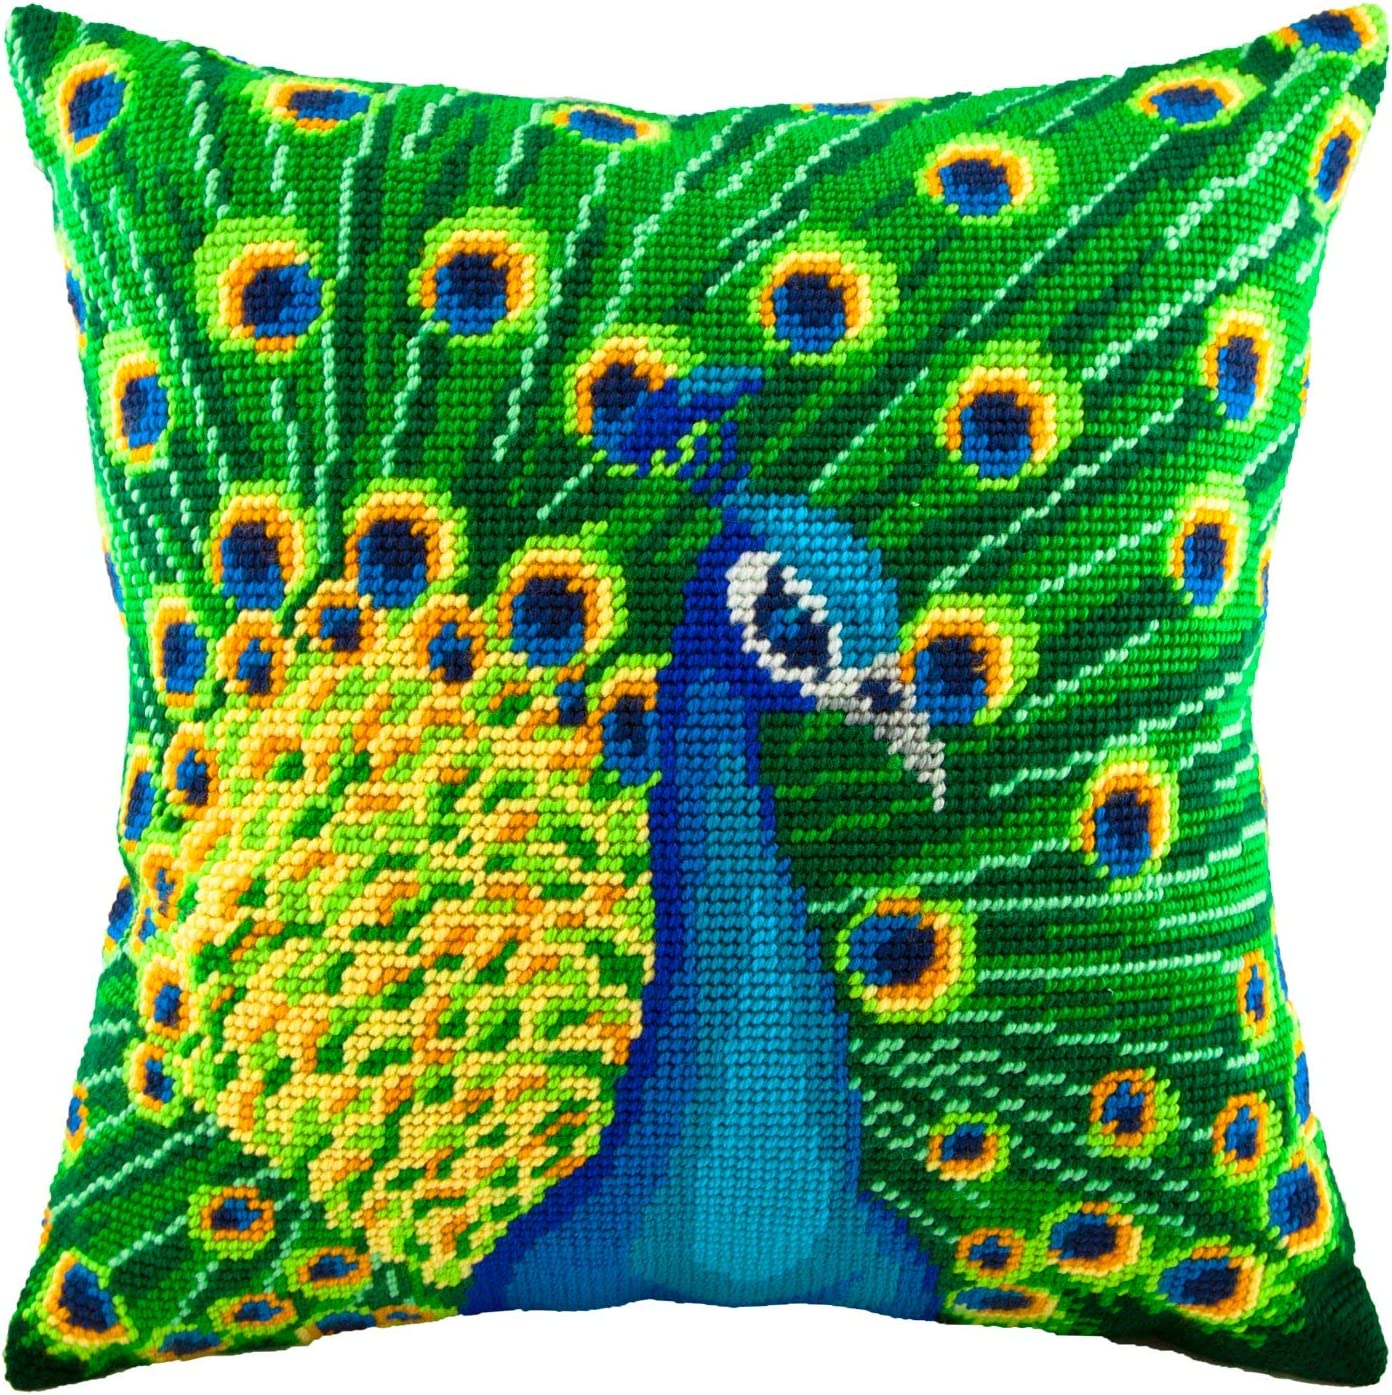 Throw Pillow Case 16/×16 Inches European Quality Home Decor Cross Stitch Kit hen Peacock Stamped Tapestry Canvas DIY Embroidery Needlepoint Cushion Cover Front Orient wild animals birds